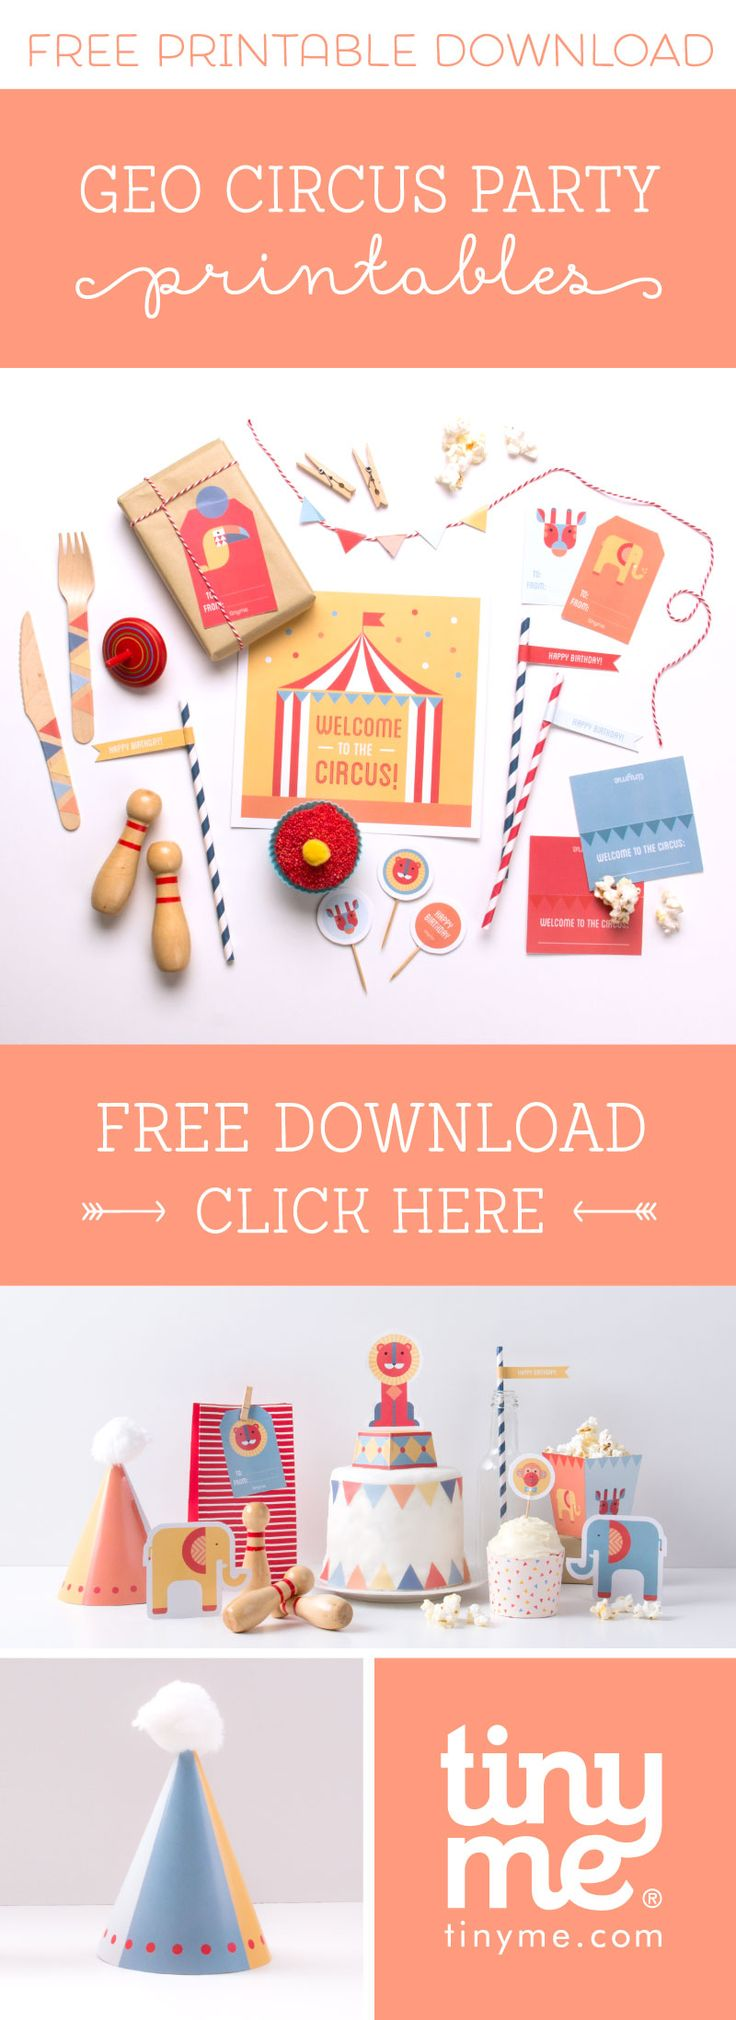 Join in the fun with our silly selection of Free Geo Circus Party Printables | Tinyme Blog